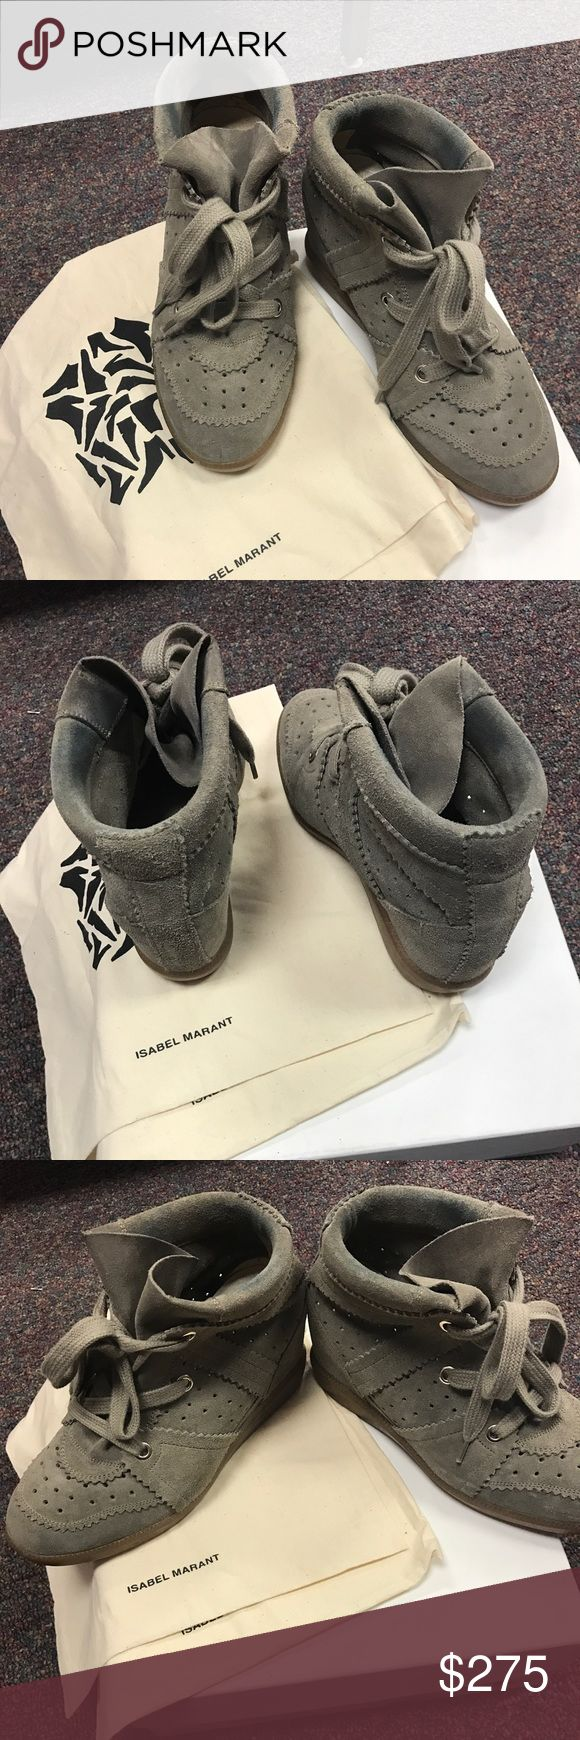 Isabel marant bobby sneakers 39 8 Great condition. Does have dark jean staining. Hardly noticeable when worn. Comes with box and dust bags. Please note this box is not for these shoes but another pair of my Isabel marant shoes. Isabel Marant Shoes Sneakers